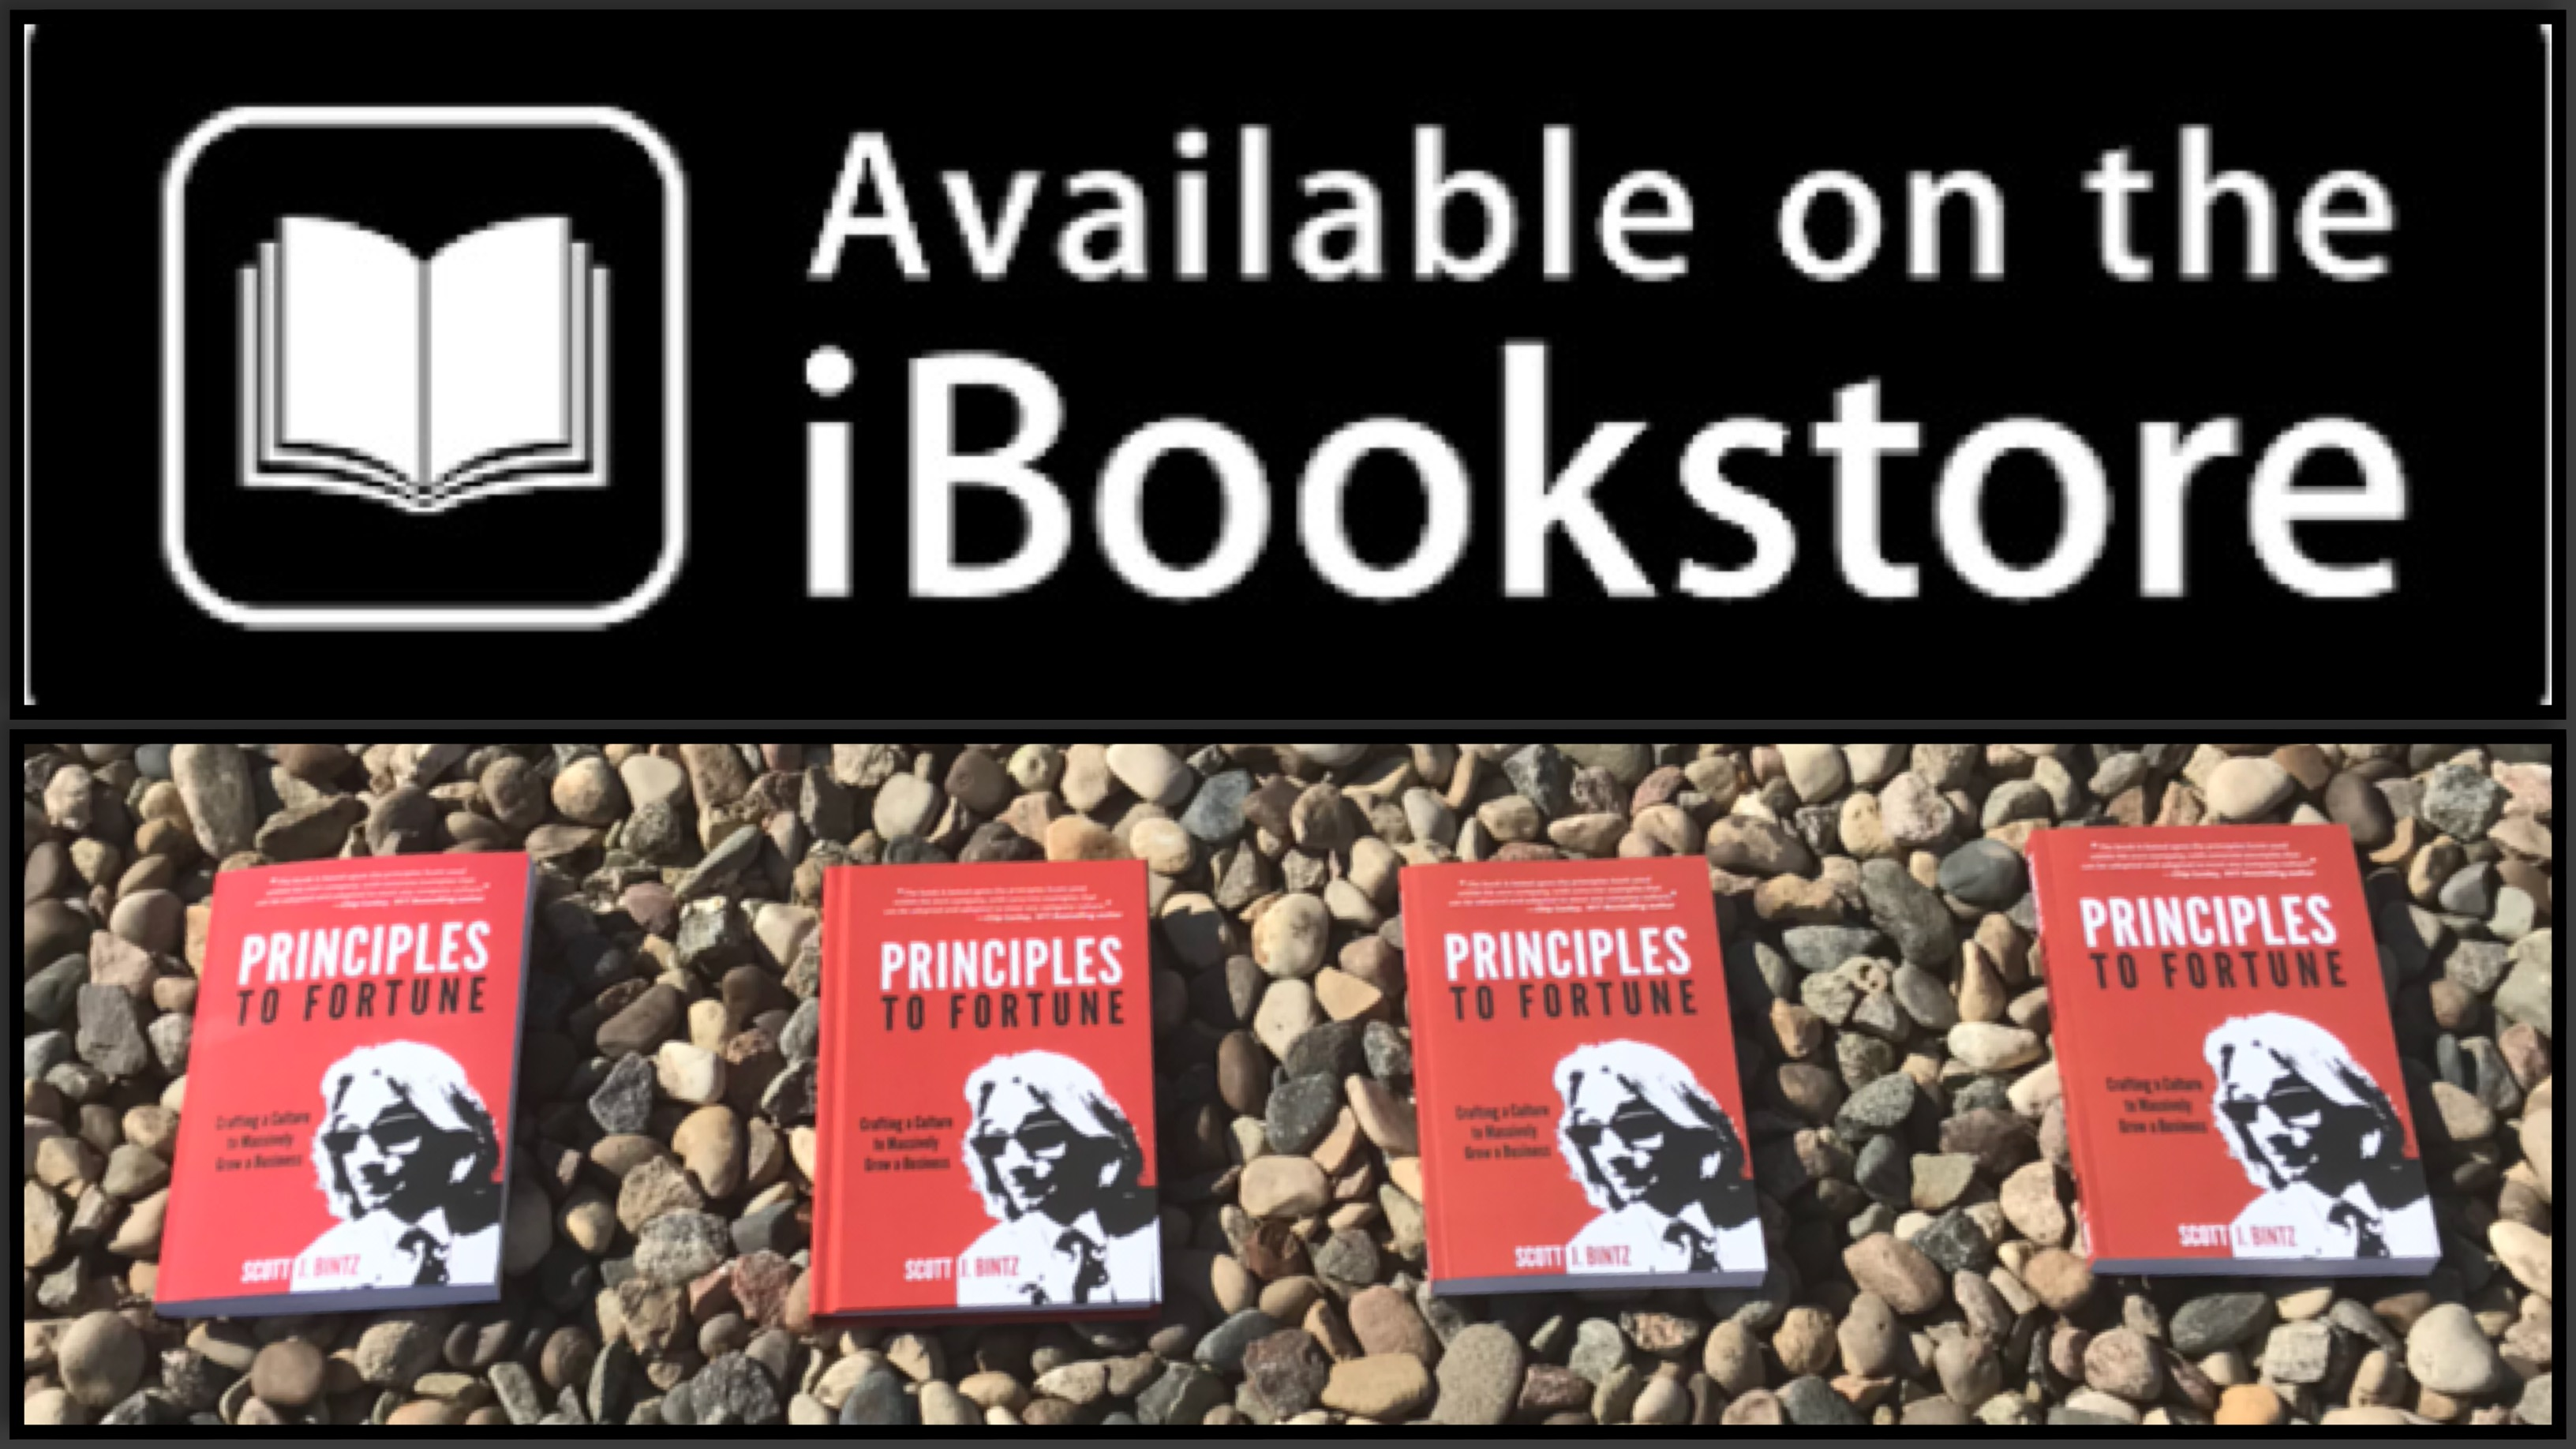 Principles to Fortune is Available on iBook Store